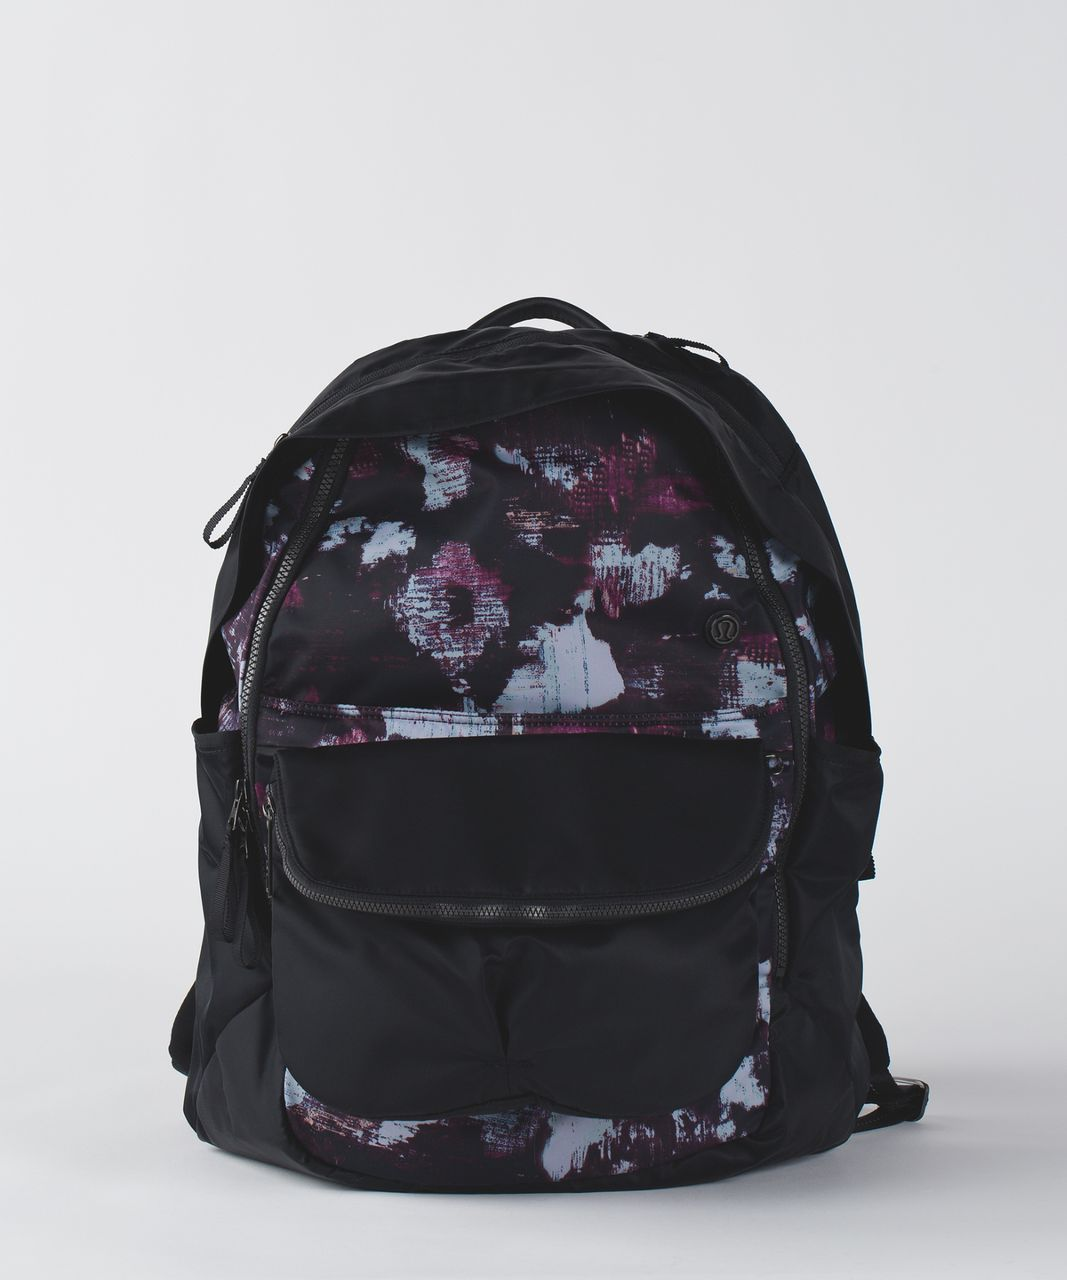 Lululemon All Day Backpack - Kara Blossom Multi / Black